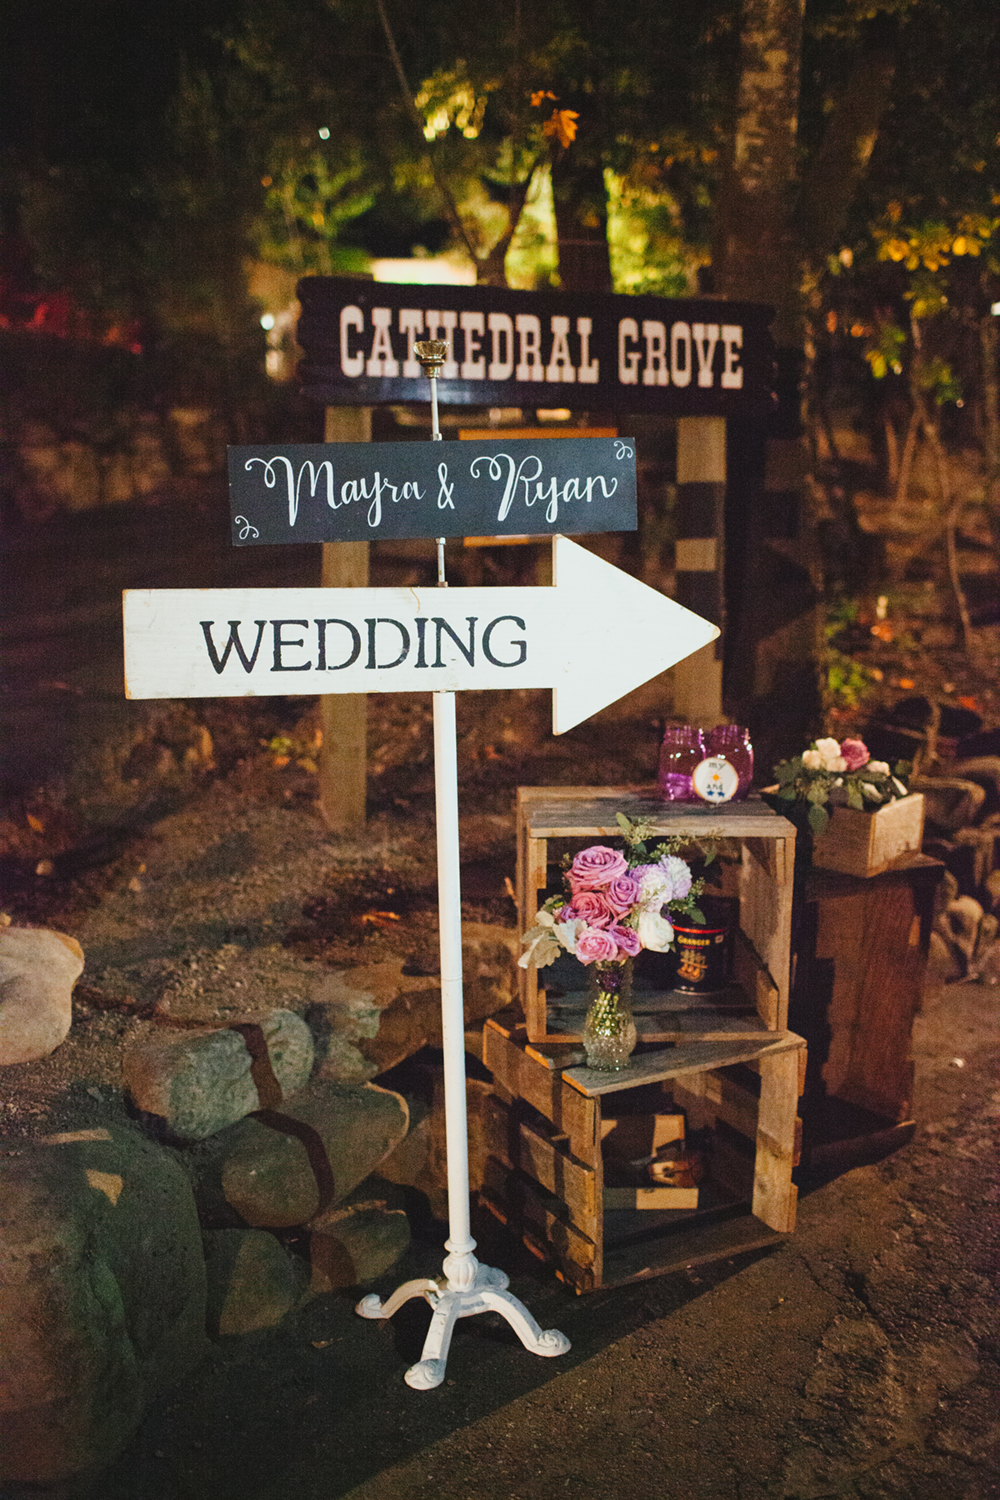 Saratoga-Springs-Outdoor-Rustic-Wedding-Details-20.JPG